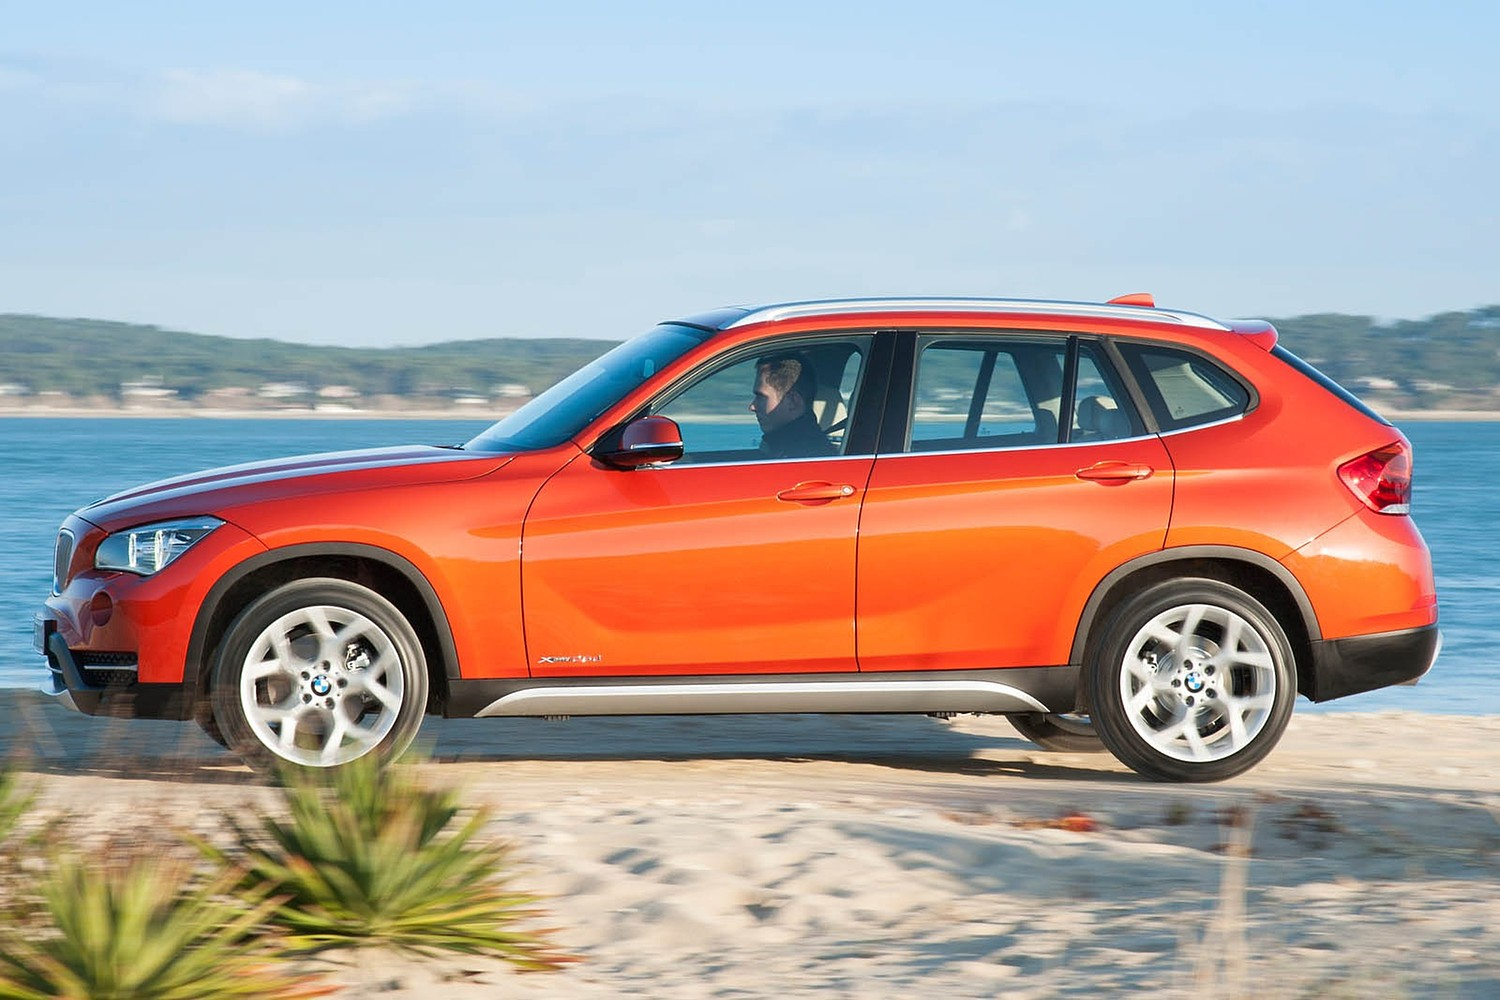 BMW X1 xDrive35i 4dr SUV Exterior (2014 model year shown)